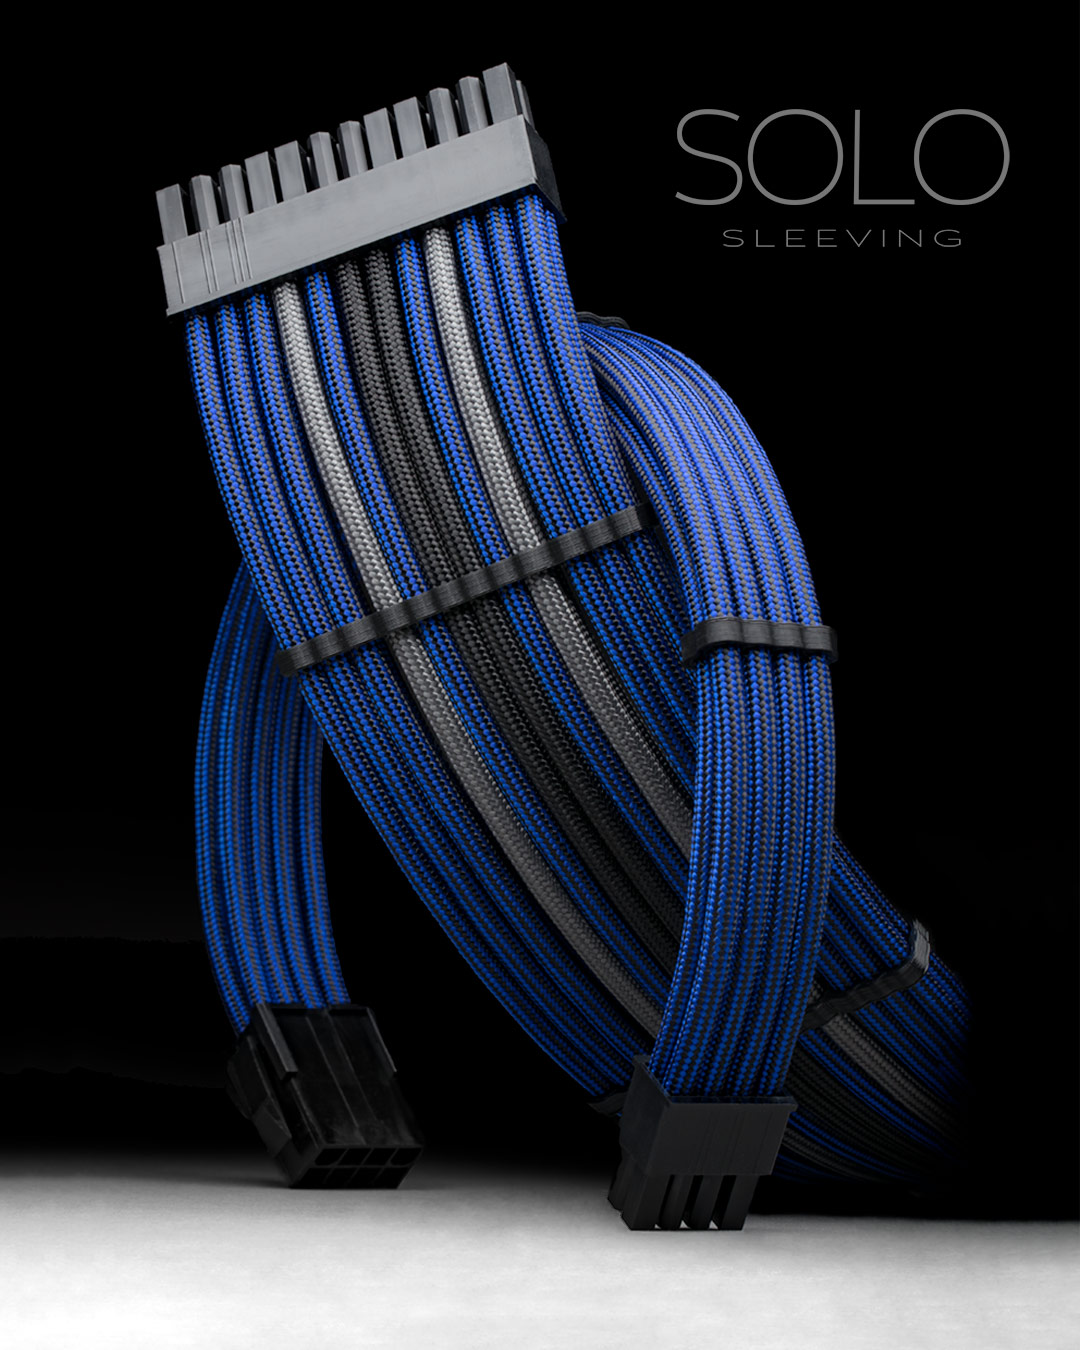 Shop premium custom PSU cables made in the USA.